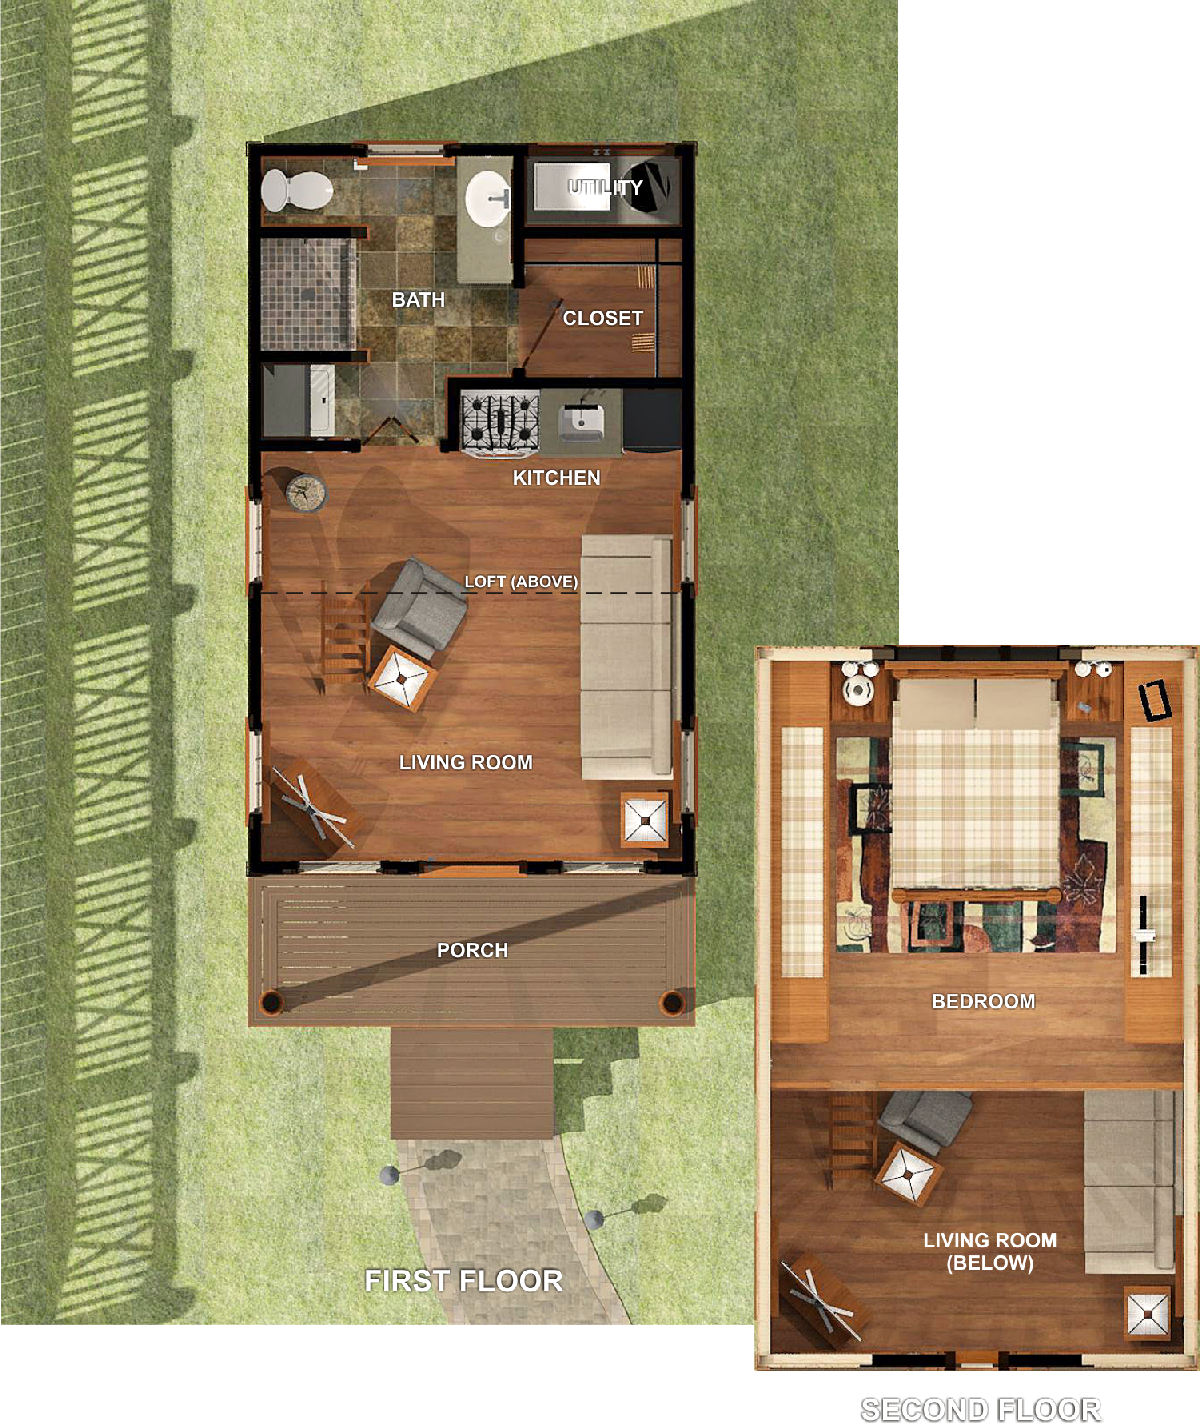 Texas tiny homes plan 448 for Home blueprints for sale